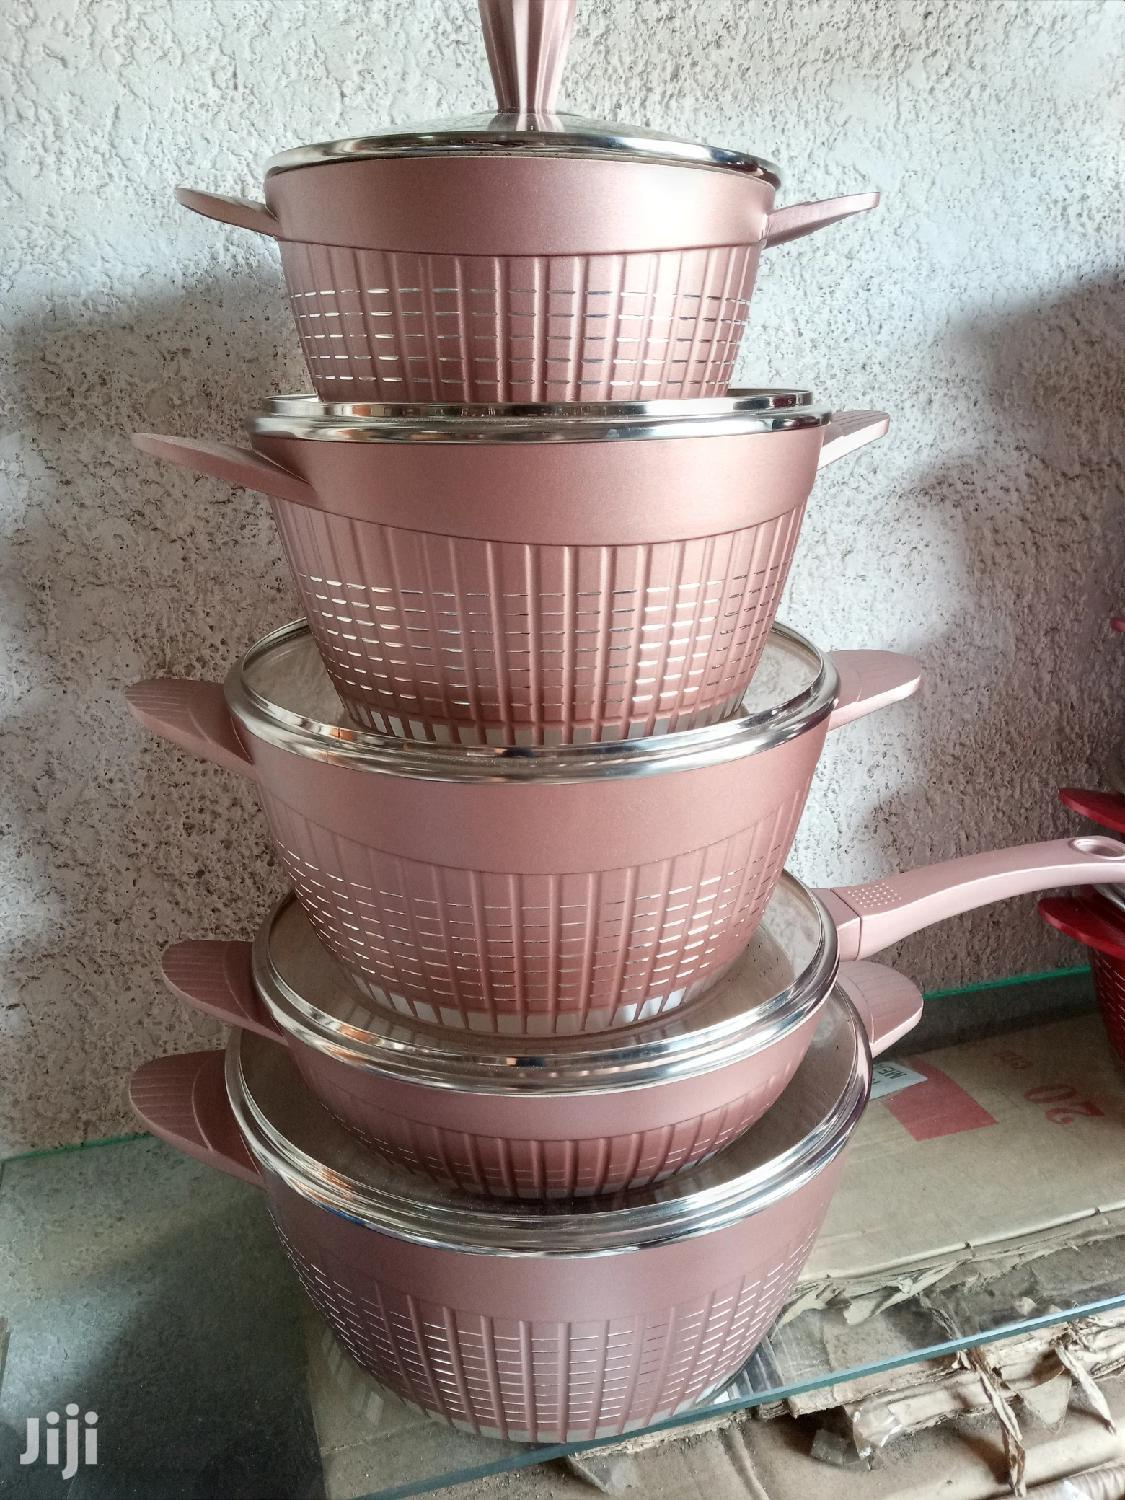 10 Pcs Non Stick Cooking Ware | Kitchen & Dining for sale in Dansoman, Greater Accra, Ghana